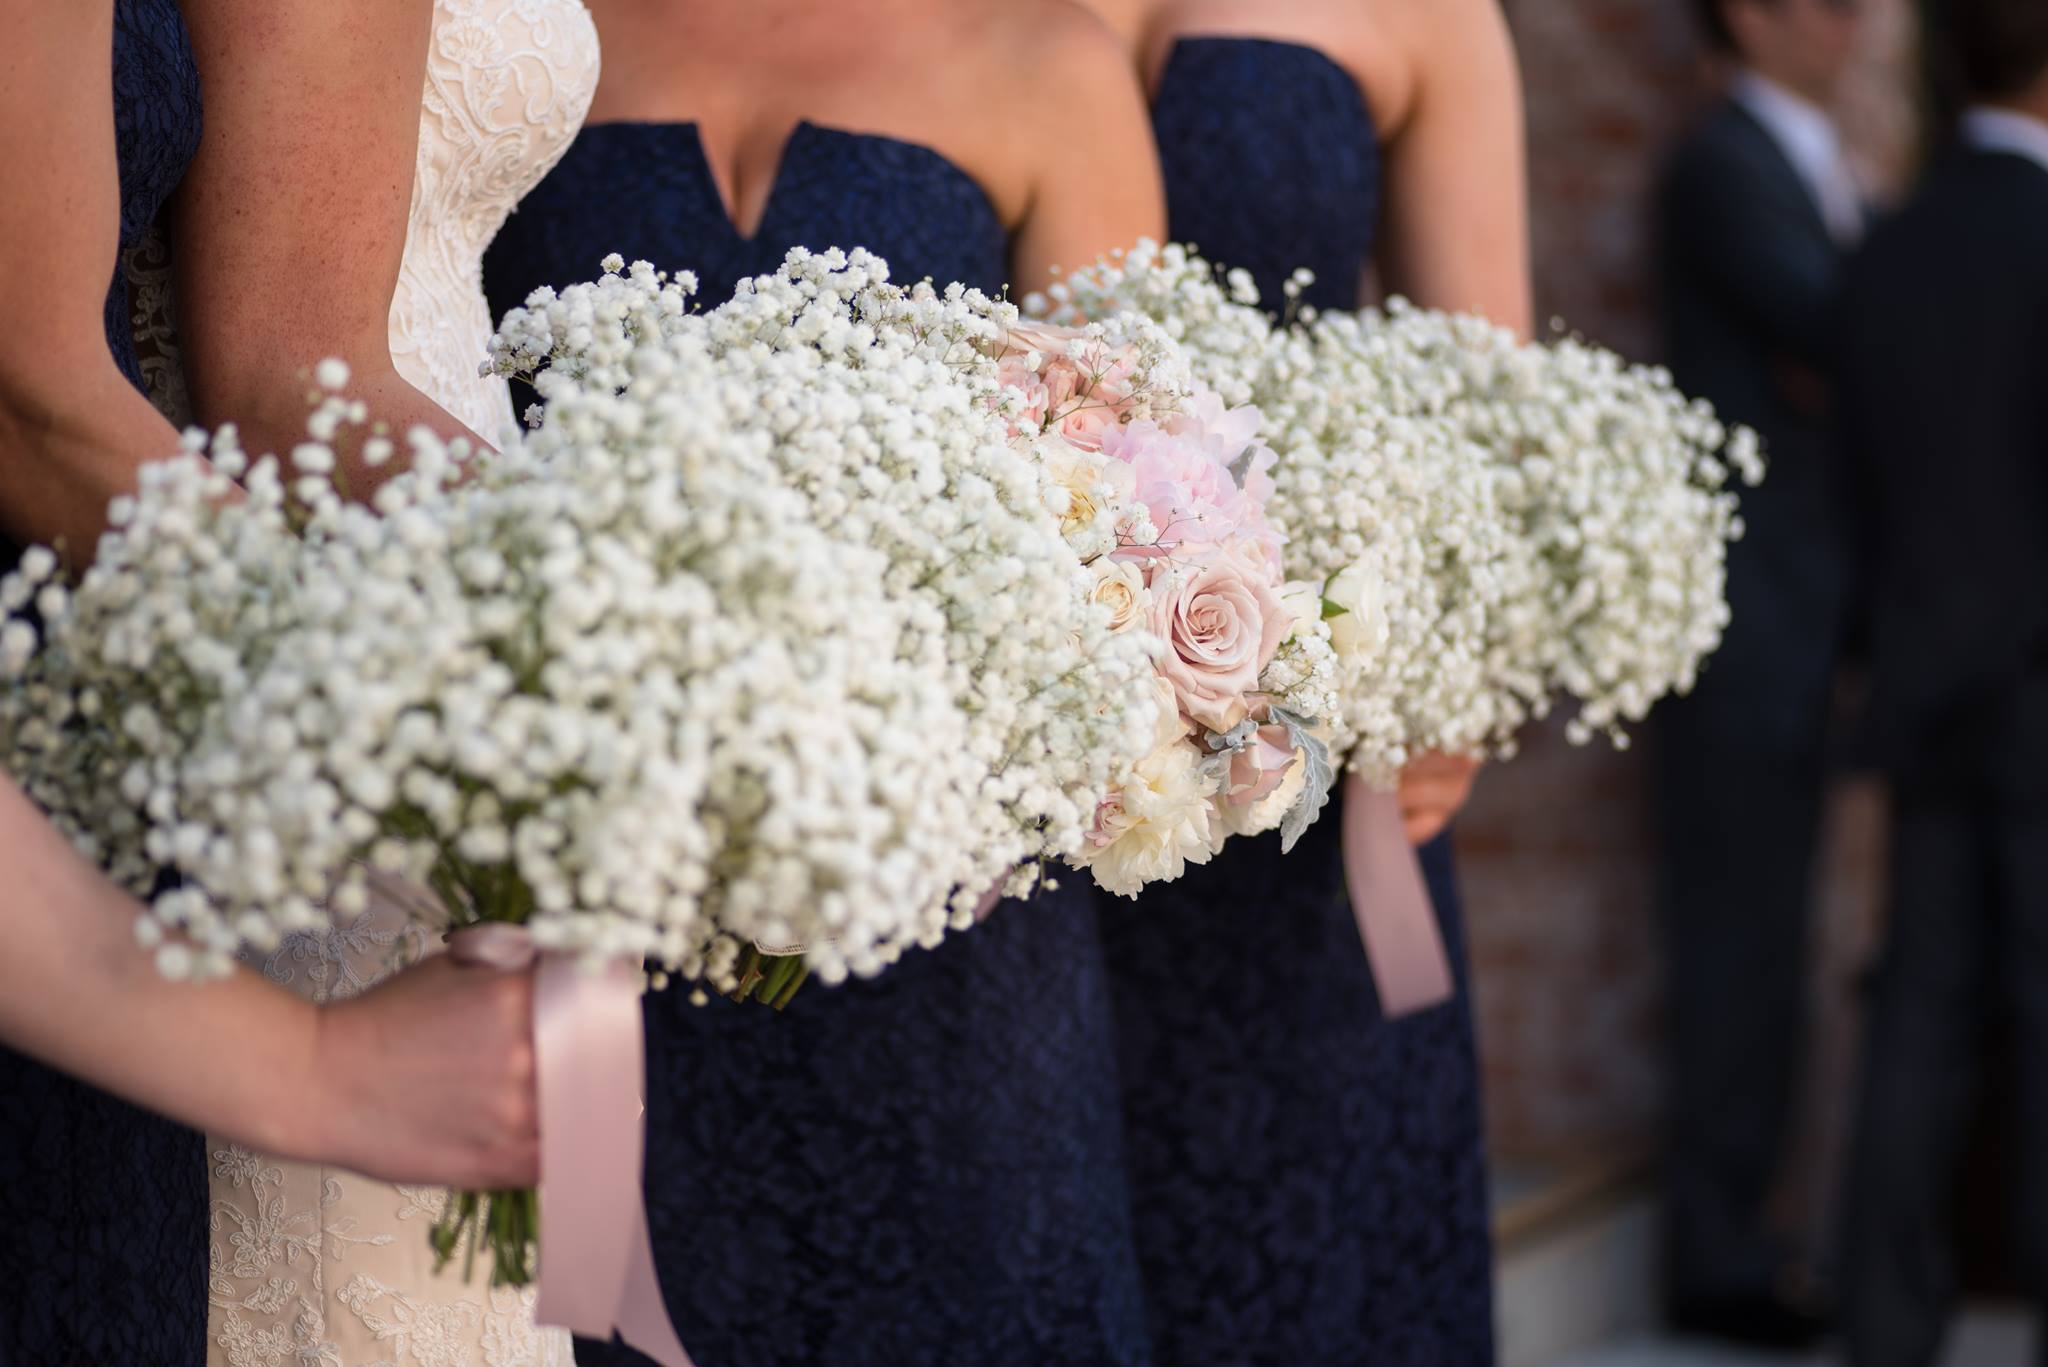 Baby's breath bouquets for bridesmaids